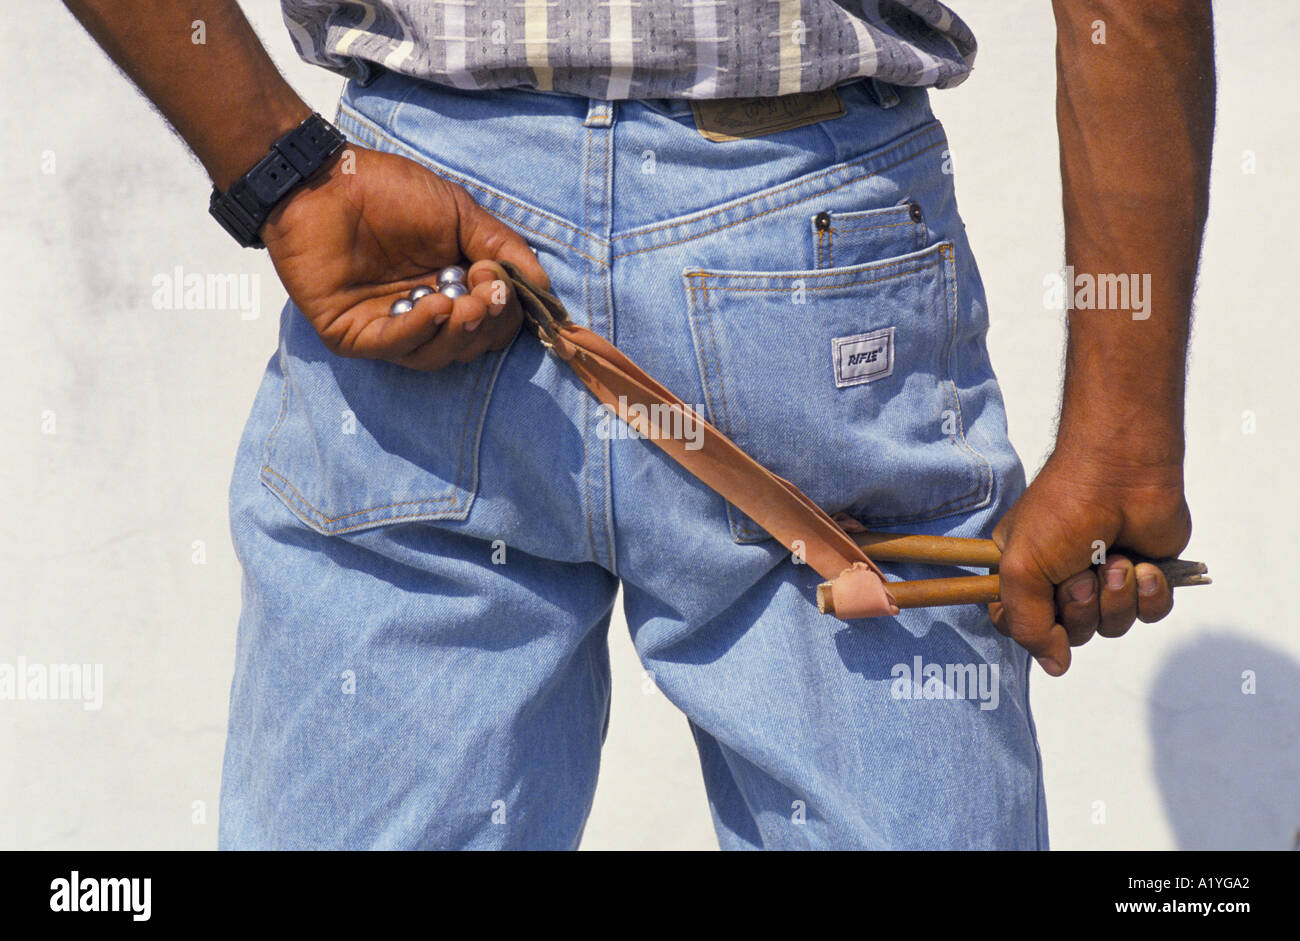 PALESTINIAN HOLDING CATAPULT DURING INTIFADA GAZA 1992 - Stock Image